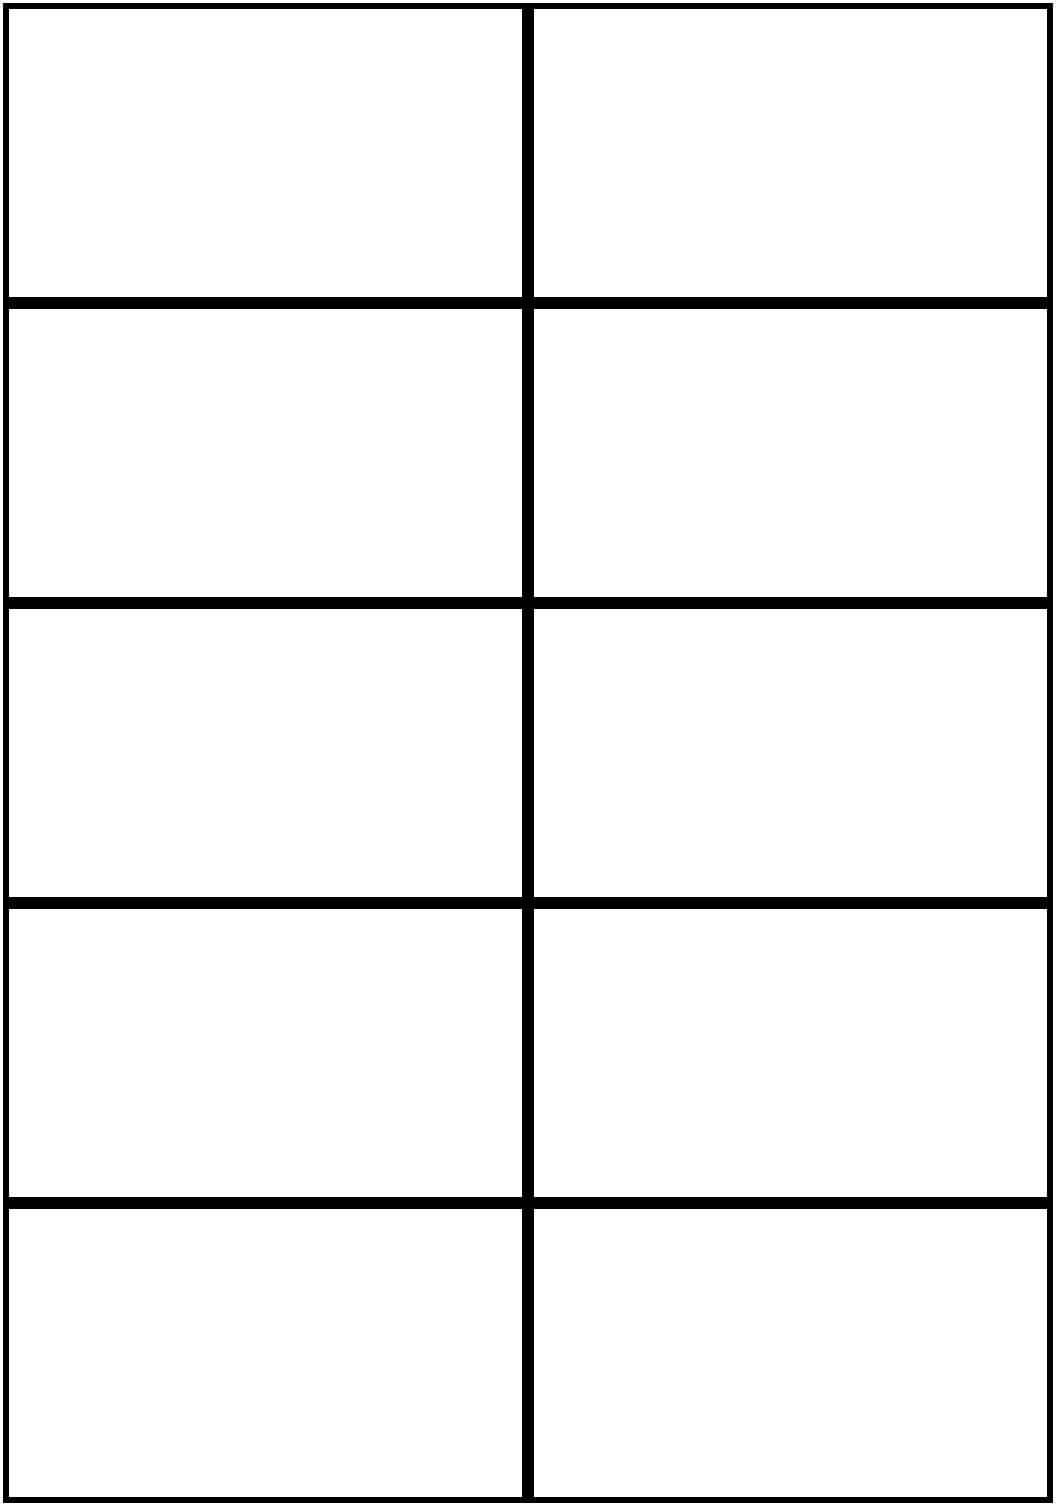 Image Result For Flashcards Template Word | Free Printable inside Free Printable Flash Cards Template